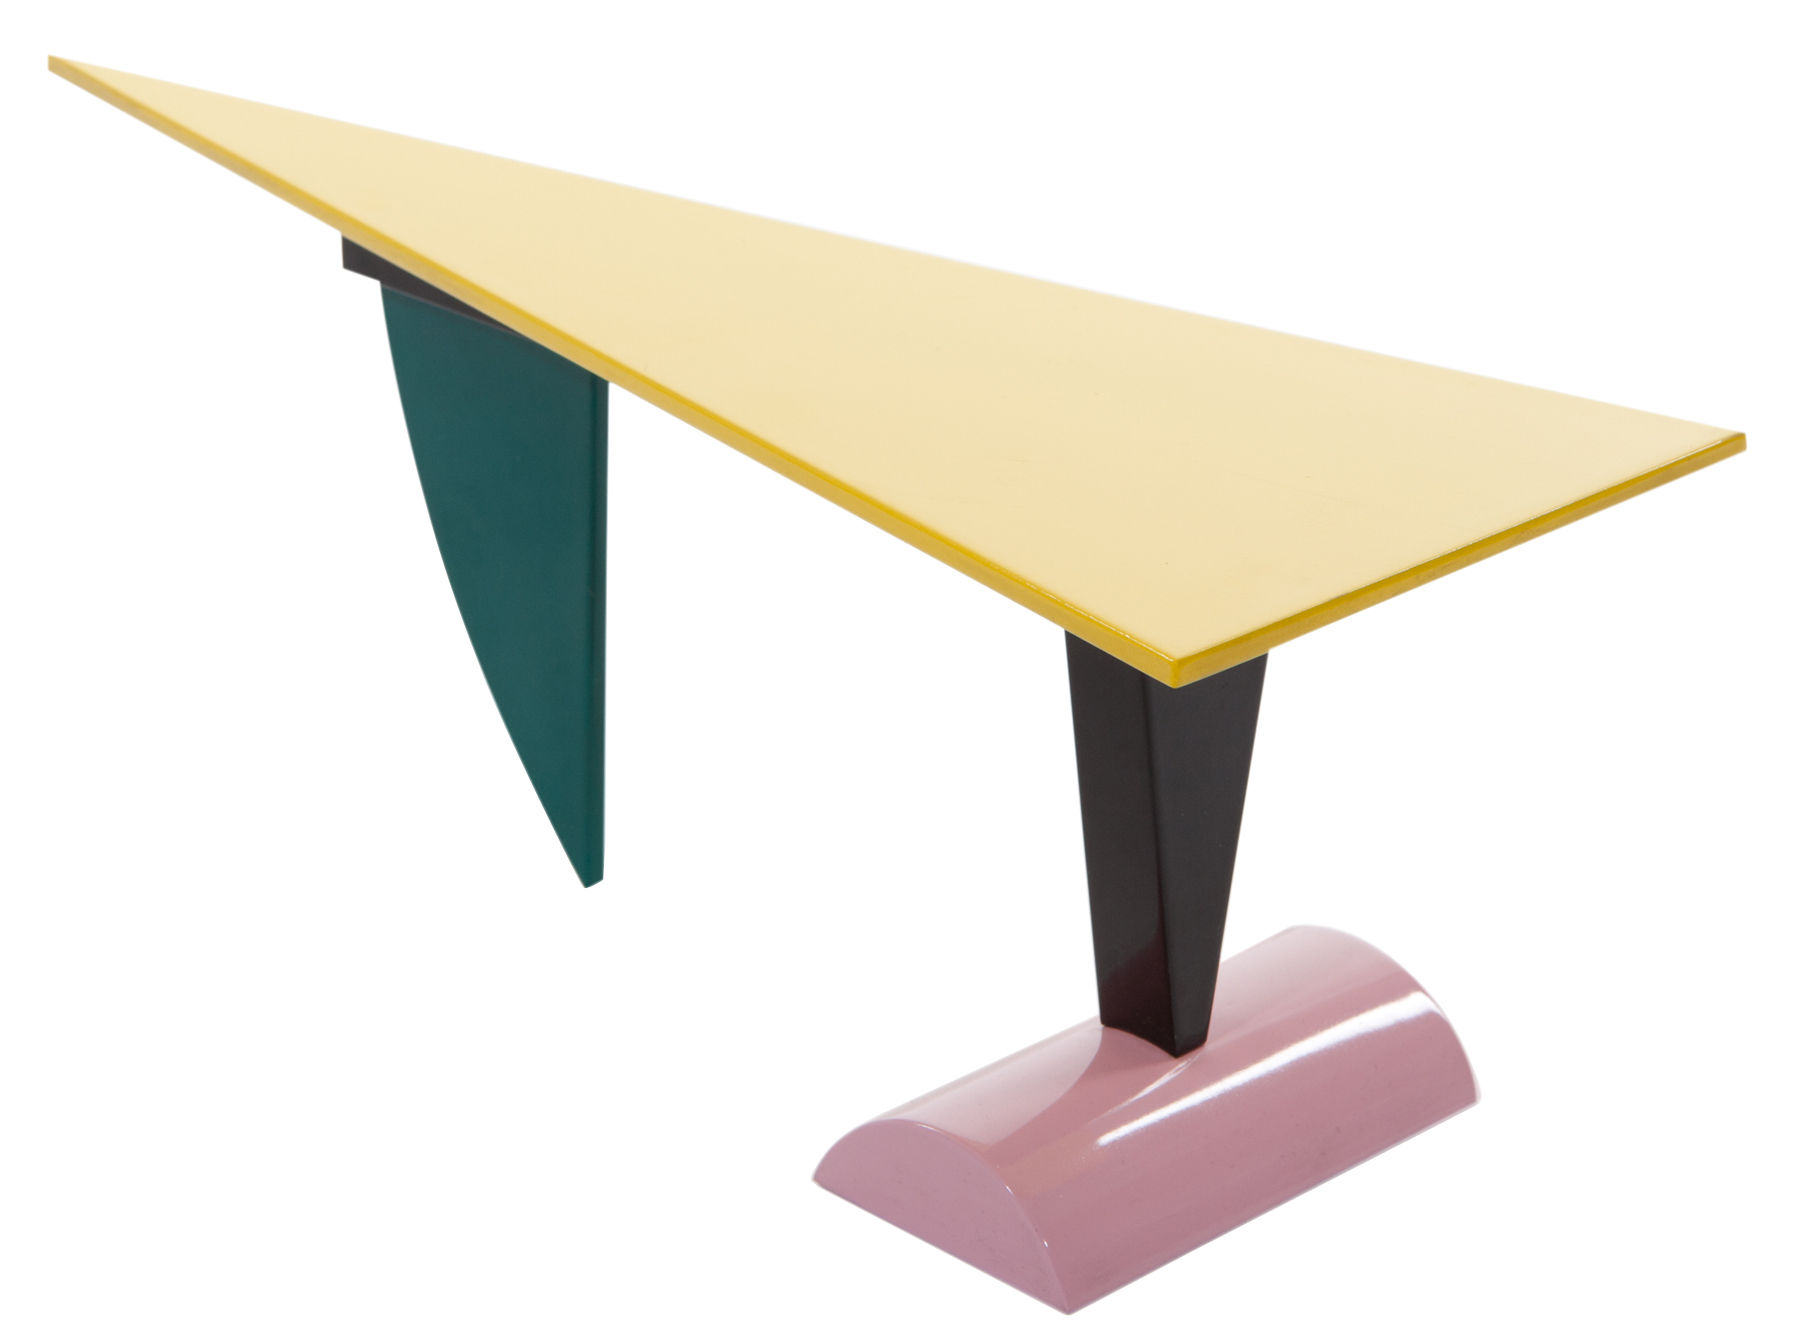 Furniture - Dining Tables - Brazil Rectangular table by Memphis Milano - Multicolored - Lacquered wood